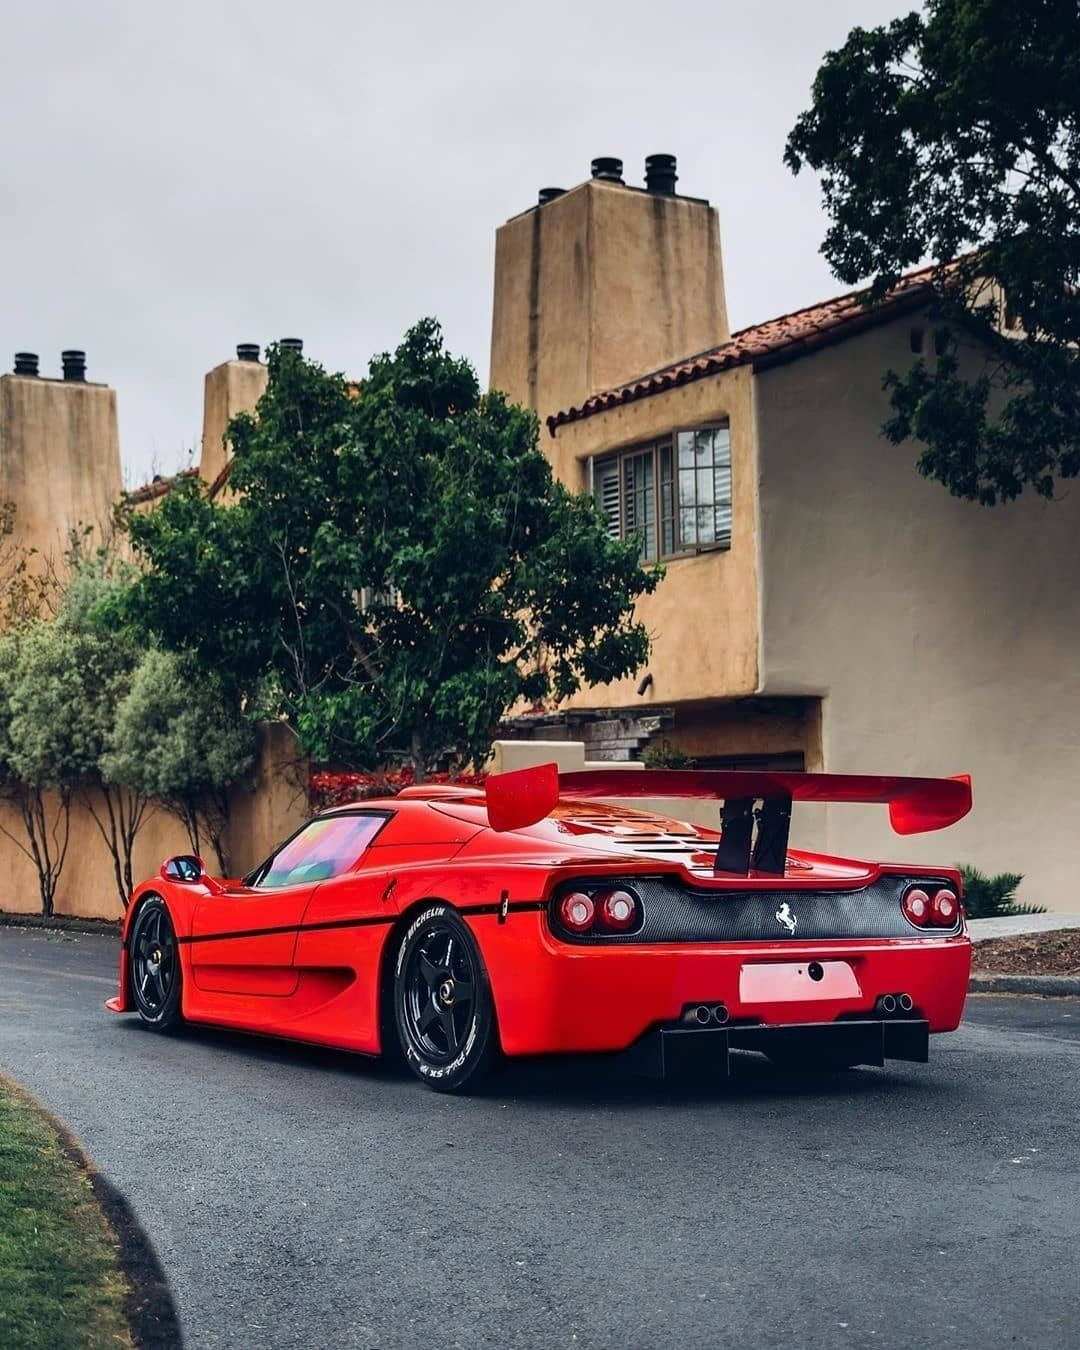 Pin by Jess Moreland on Cars in 2020 Super cars, Ferrari